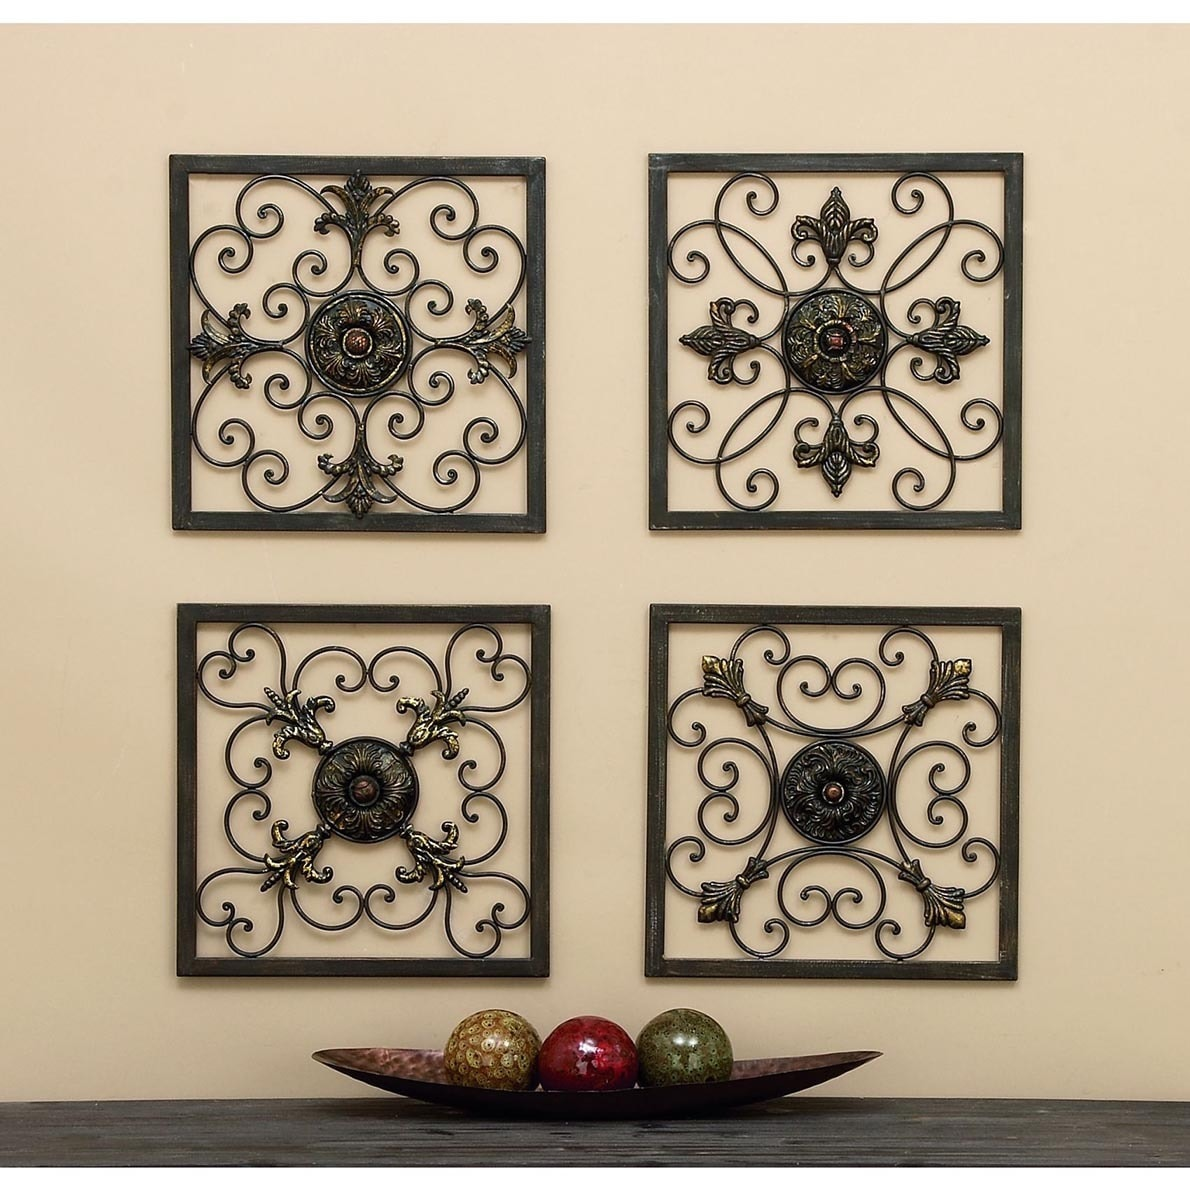 Laundry Room Wall Plaques Extraordinary Wall Plaques  Wall Plate Design Ideas Inspiration Design